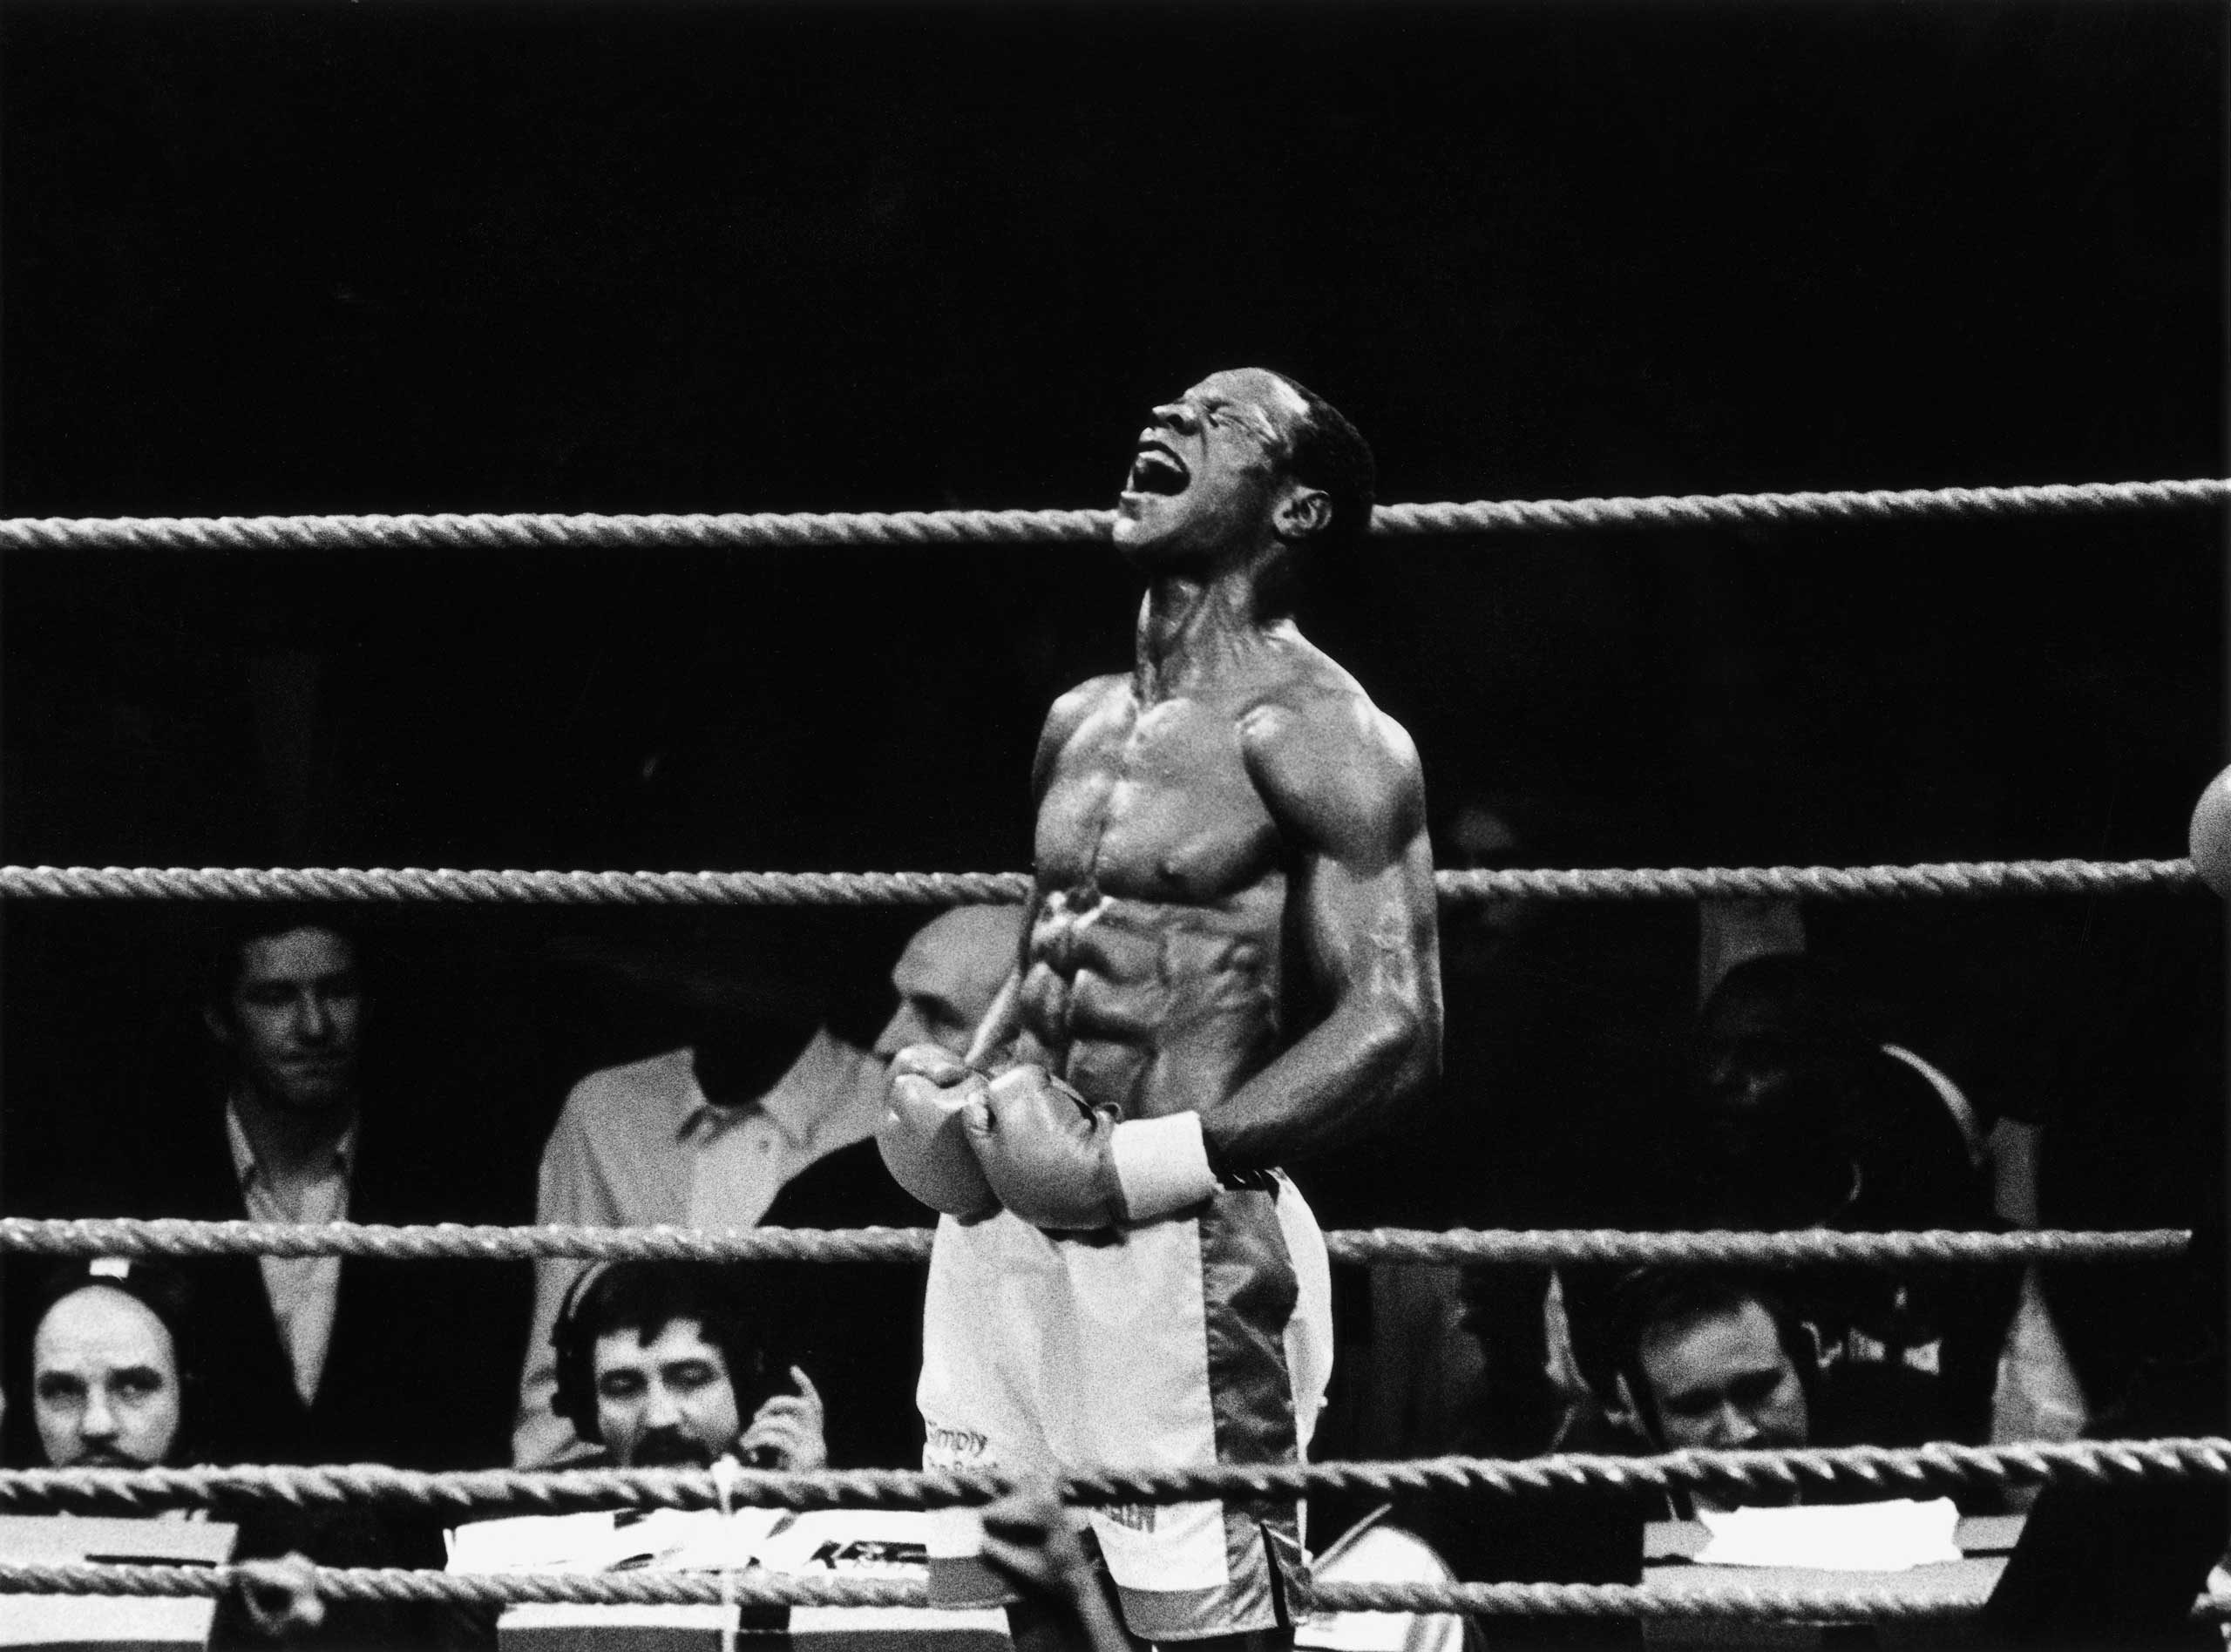 "<b>Chris Eubank vs. Nigel Benn I, Nov. 18, 1990</b> These two British boxers reached the peak of their careers around the same time. Naturally, fight fans demanded a match-up. The drama kicked in before a single punch had even been thrown: As Eubank walked out to the sound of Tina Turner's ""Simply the Best"", the song suddenly stopped. It's alleged that Benn's entourage sabotaged the music (to his credit, Eubank was nonplussed and still managed to perform his trademark cocky vault into the ring). Benn, ominously known as the Dark Destroyer, looked furious.                                                                      As for the fight itself, it went back and forth as both men gave their all (commentator Jim McDonald screamed at one point, ""Jesus, look at that right hand!""). But it was Eubank who took the World Middleweight title when the fight was stopped in the ninth after Benn was subjected to a barrage of blows in the corner despite the fact that he'd floored Eubank earlier that same round. The two fought out a draw a few years later. Despite the build-up, that match couldn't live up to their first meeting which was, indeed, simply the best."